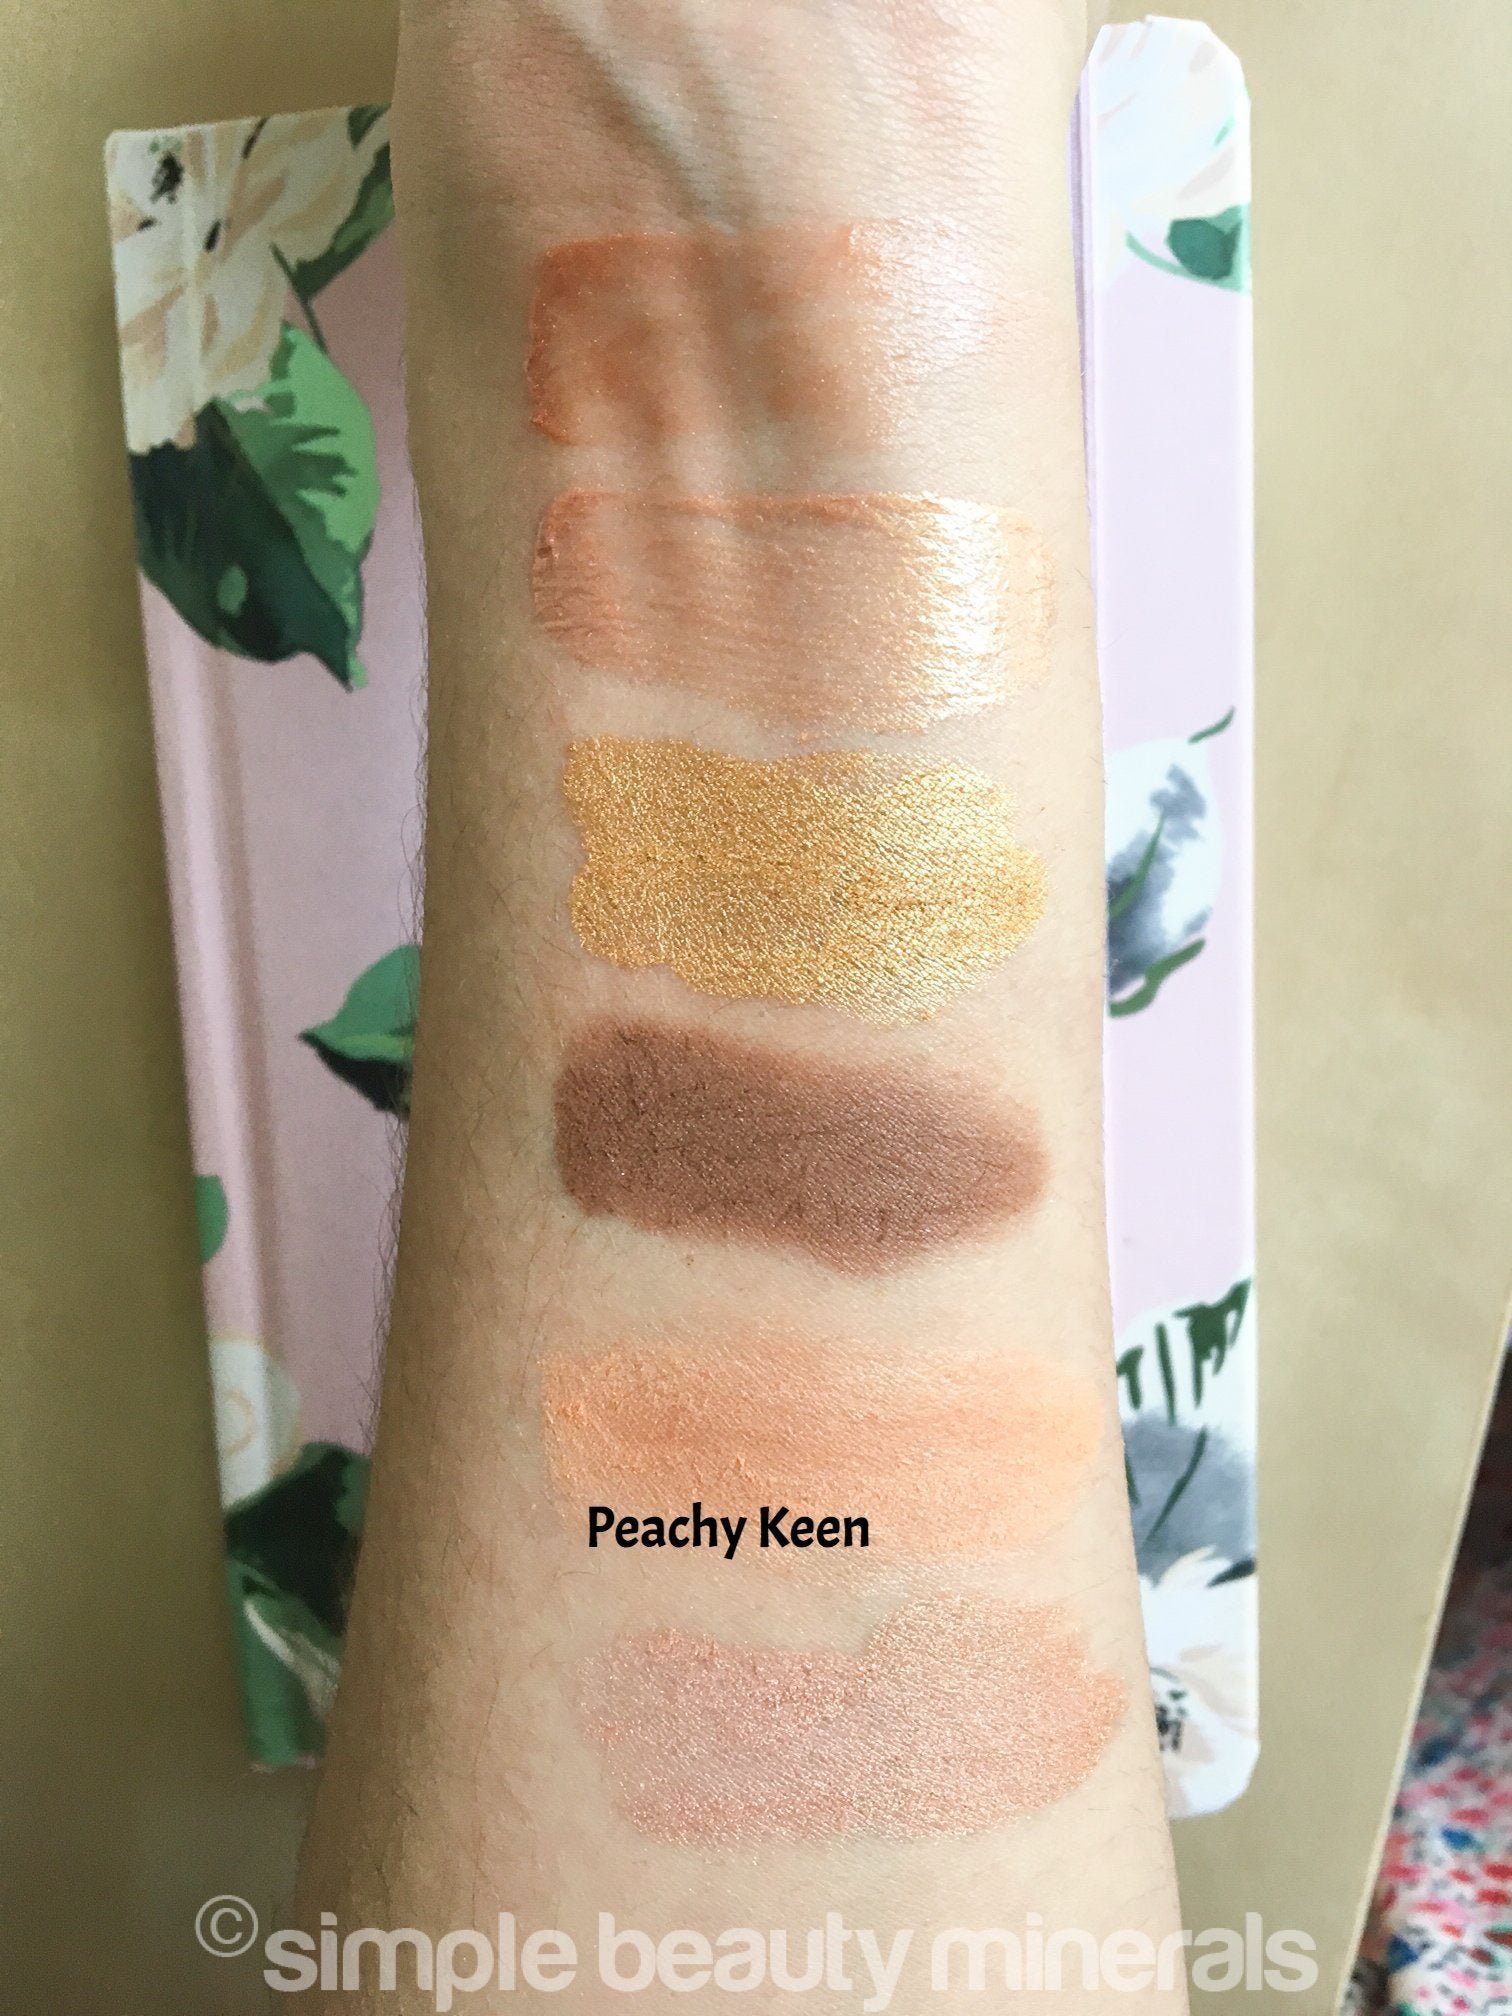 Simple Beauty Minerals - Peachy Keen Cheek Color